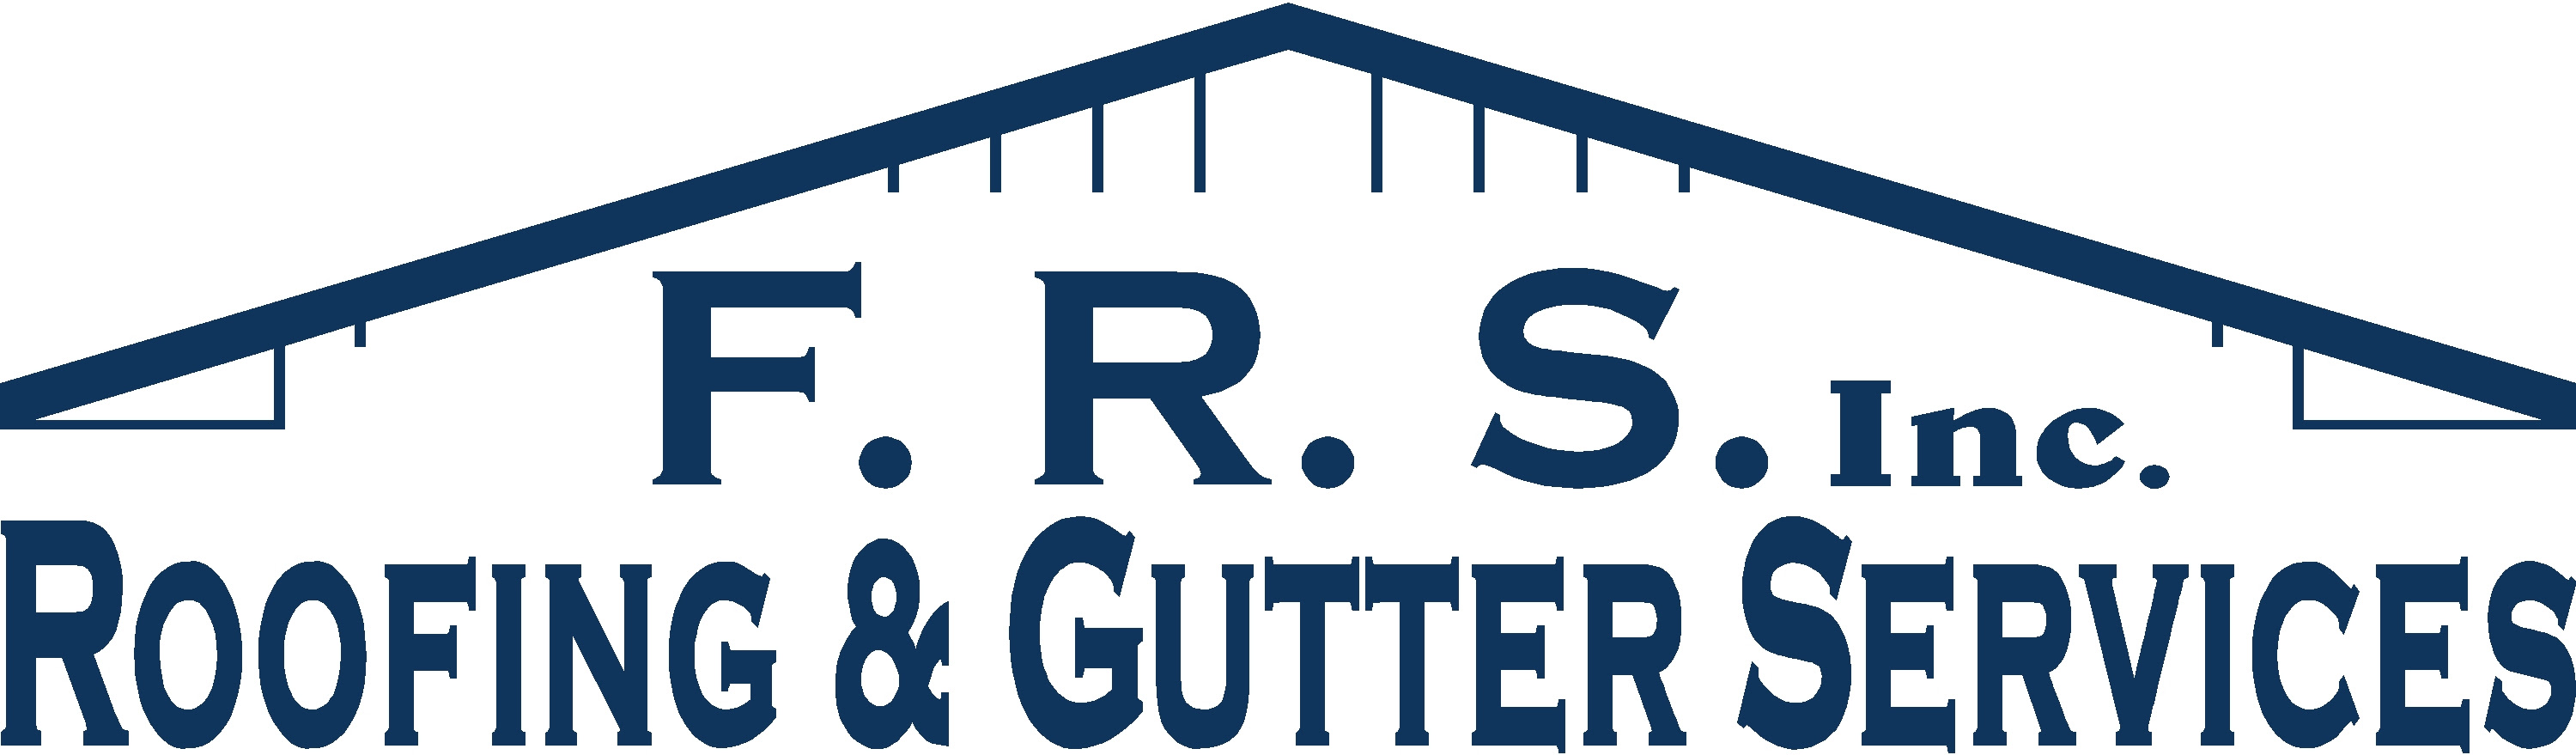 Frs Roofing | Medford MA | Read Reviews + Get a Free Quote | BuildZoom